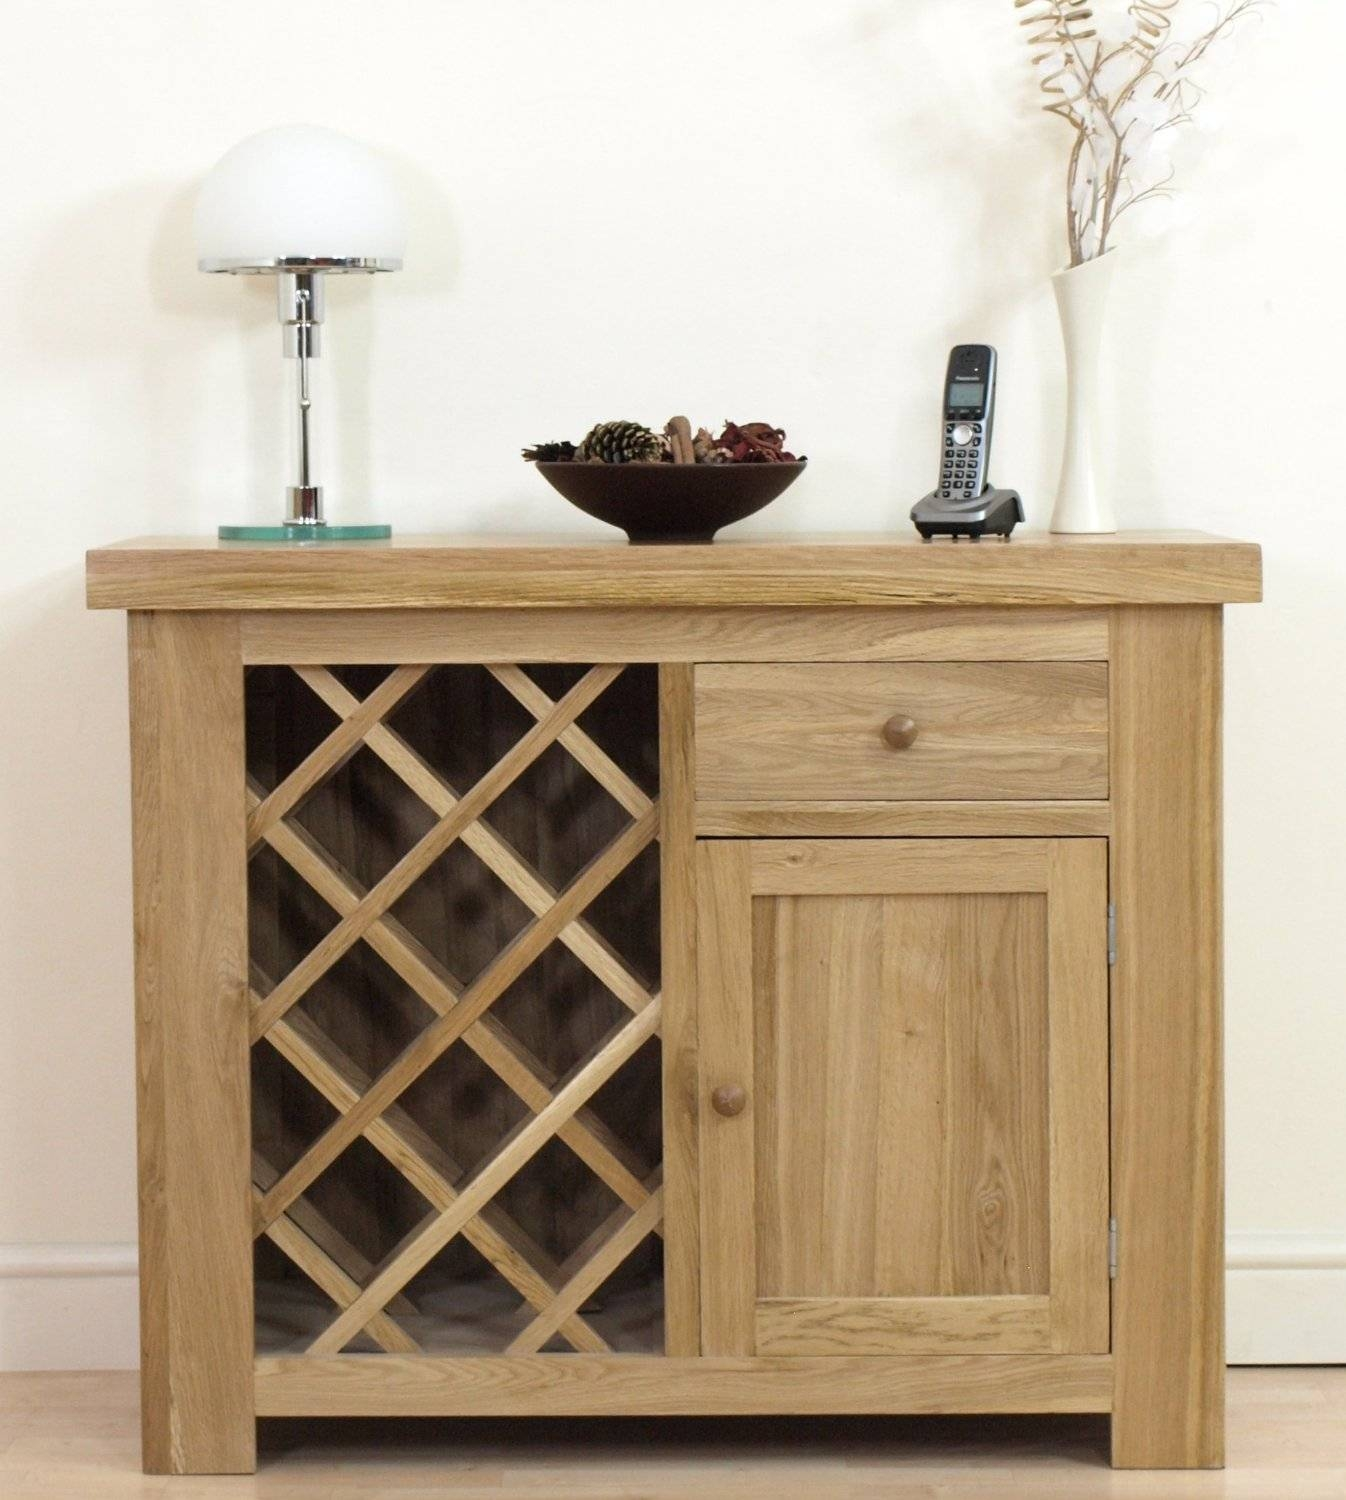 Wine Sideboard | Soft Decorating with Oak Sideboards With Wine Rack (Image 29 of 30)